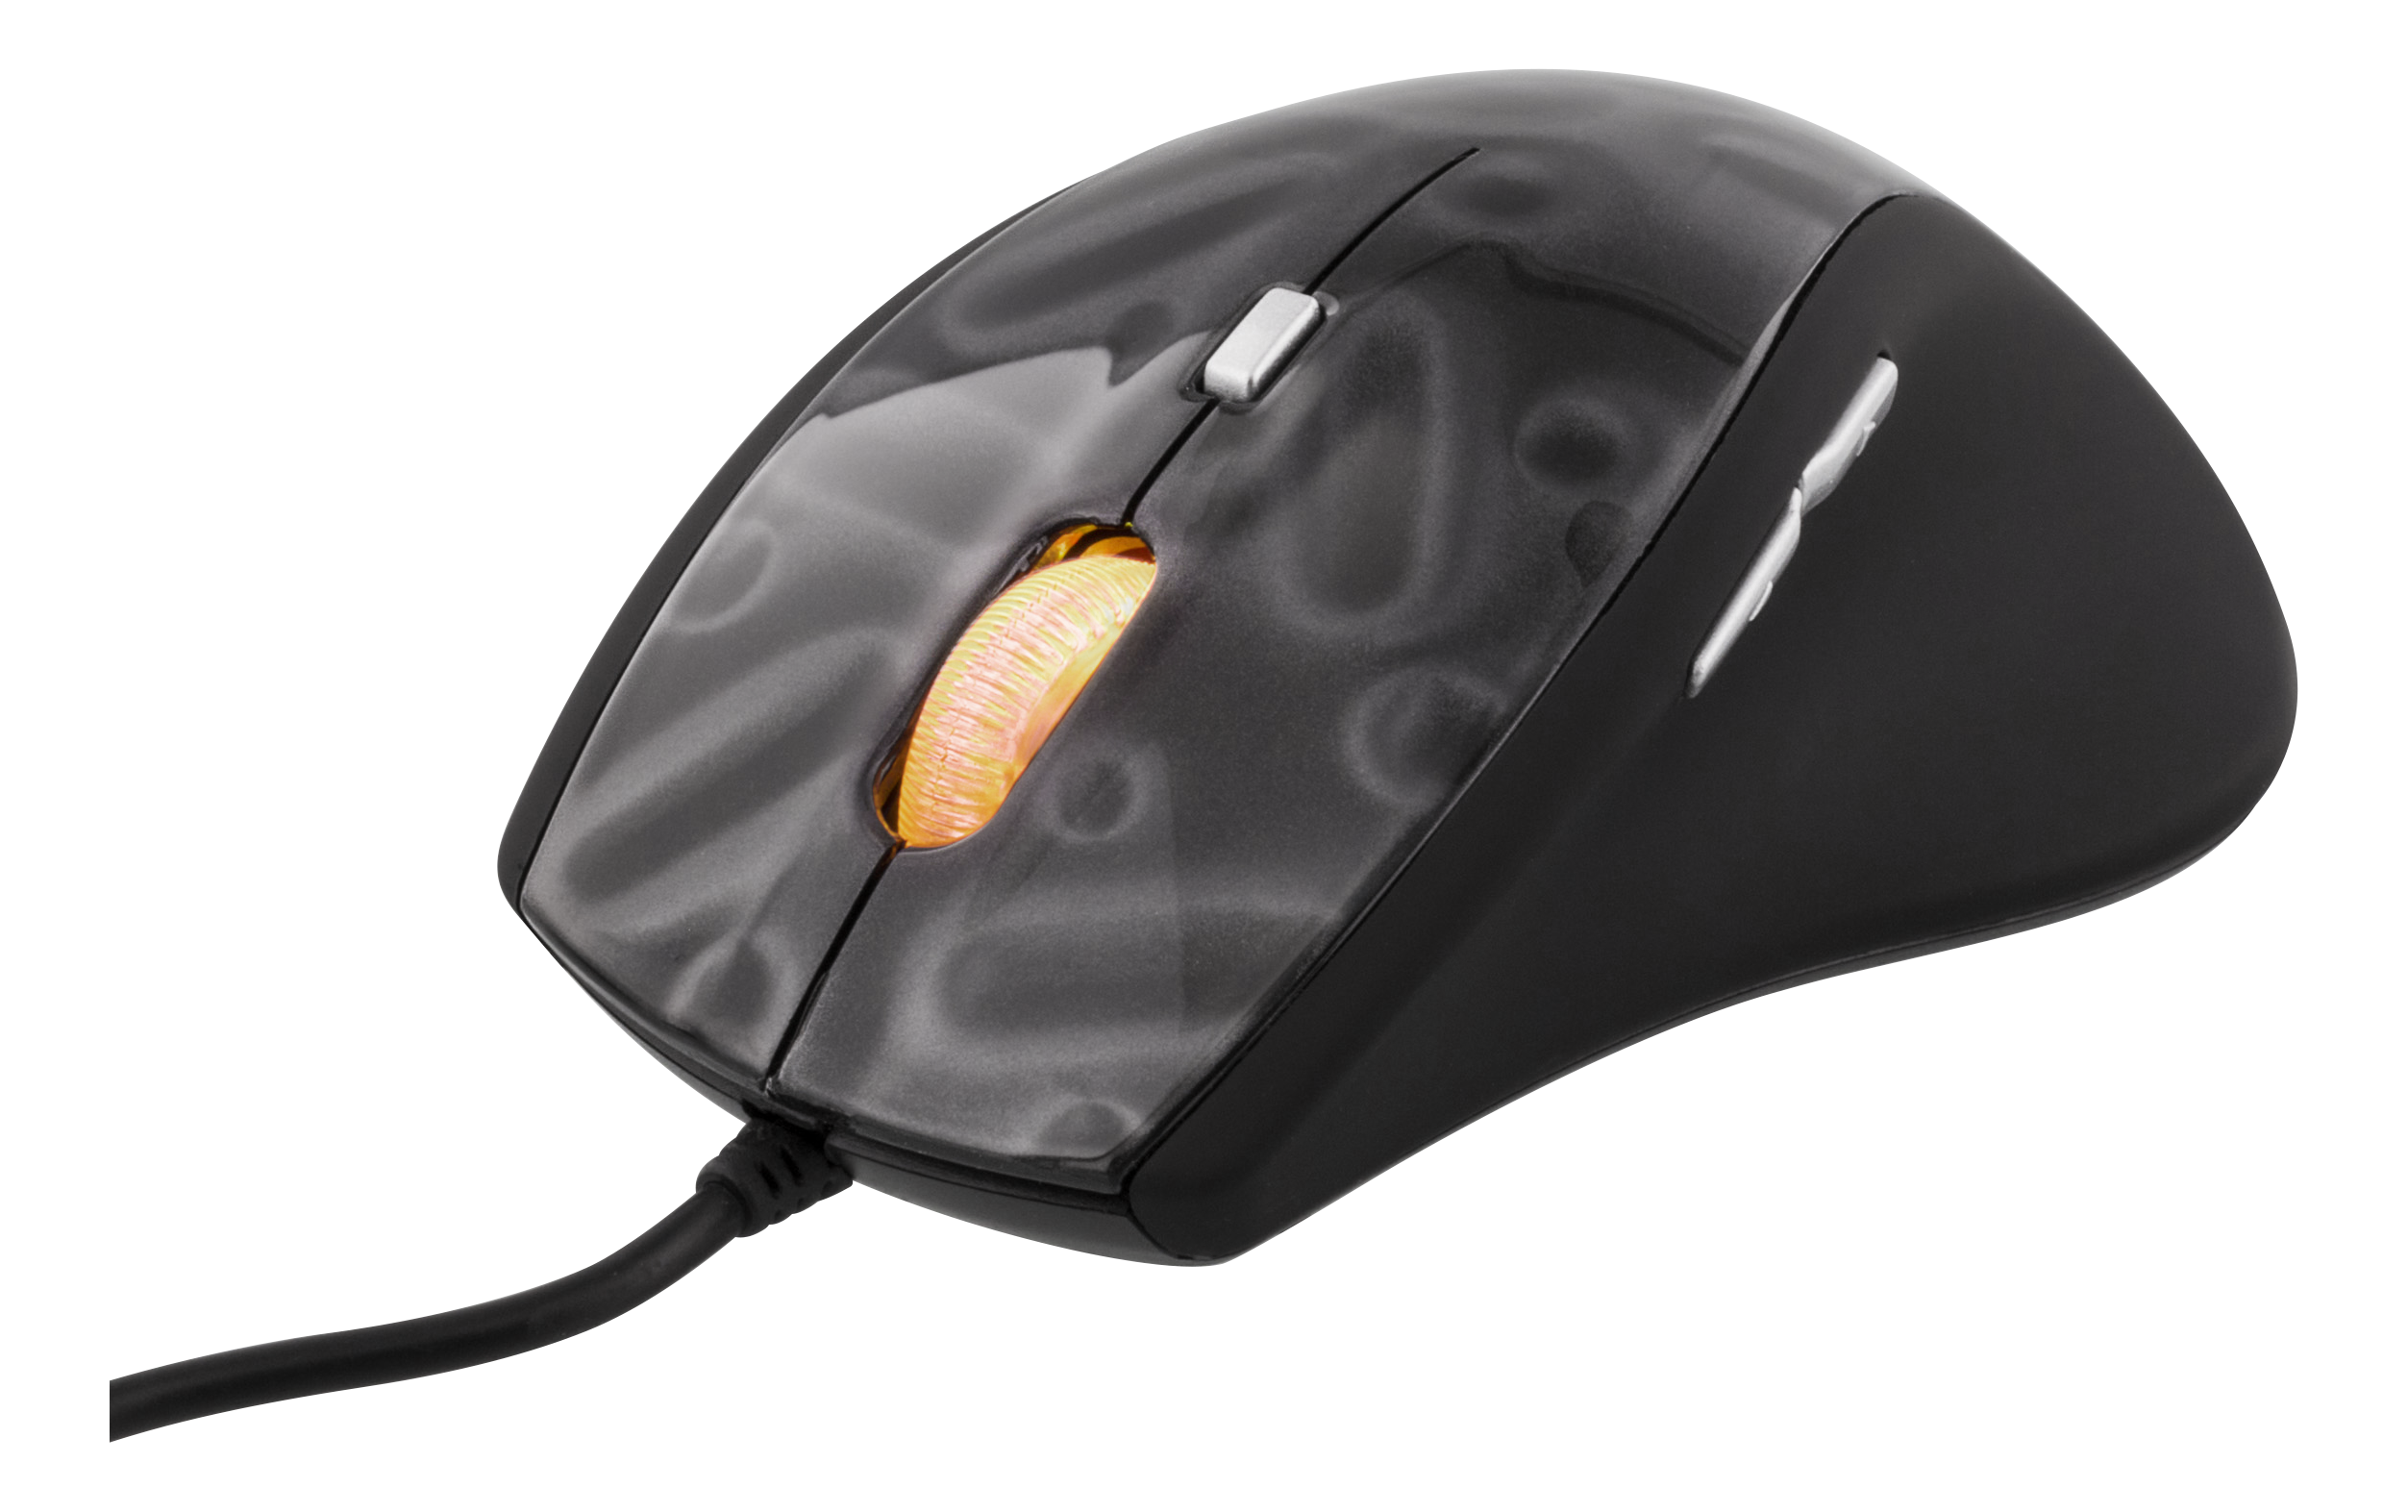 DELTACO GAMING optical mouse, 500-1600 DPI, 5 buttons, scroll wheel, GAM-013 (Kan sendes i brev)